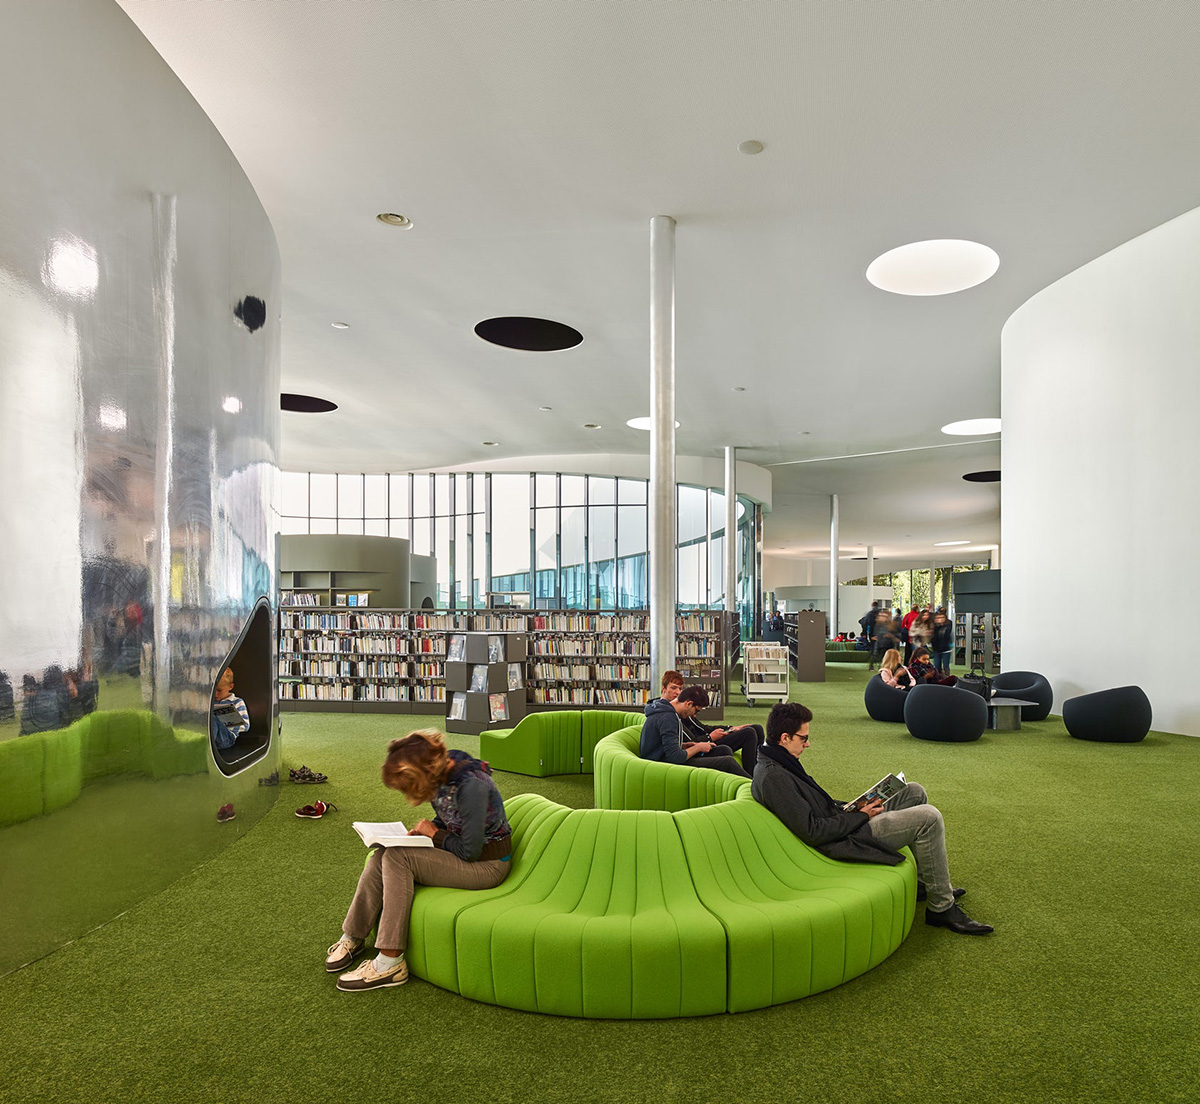 02-media-library-thirt-place-dominique-coulon-associes